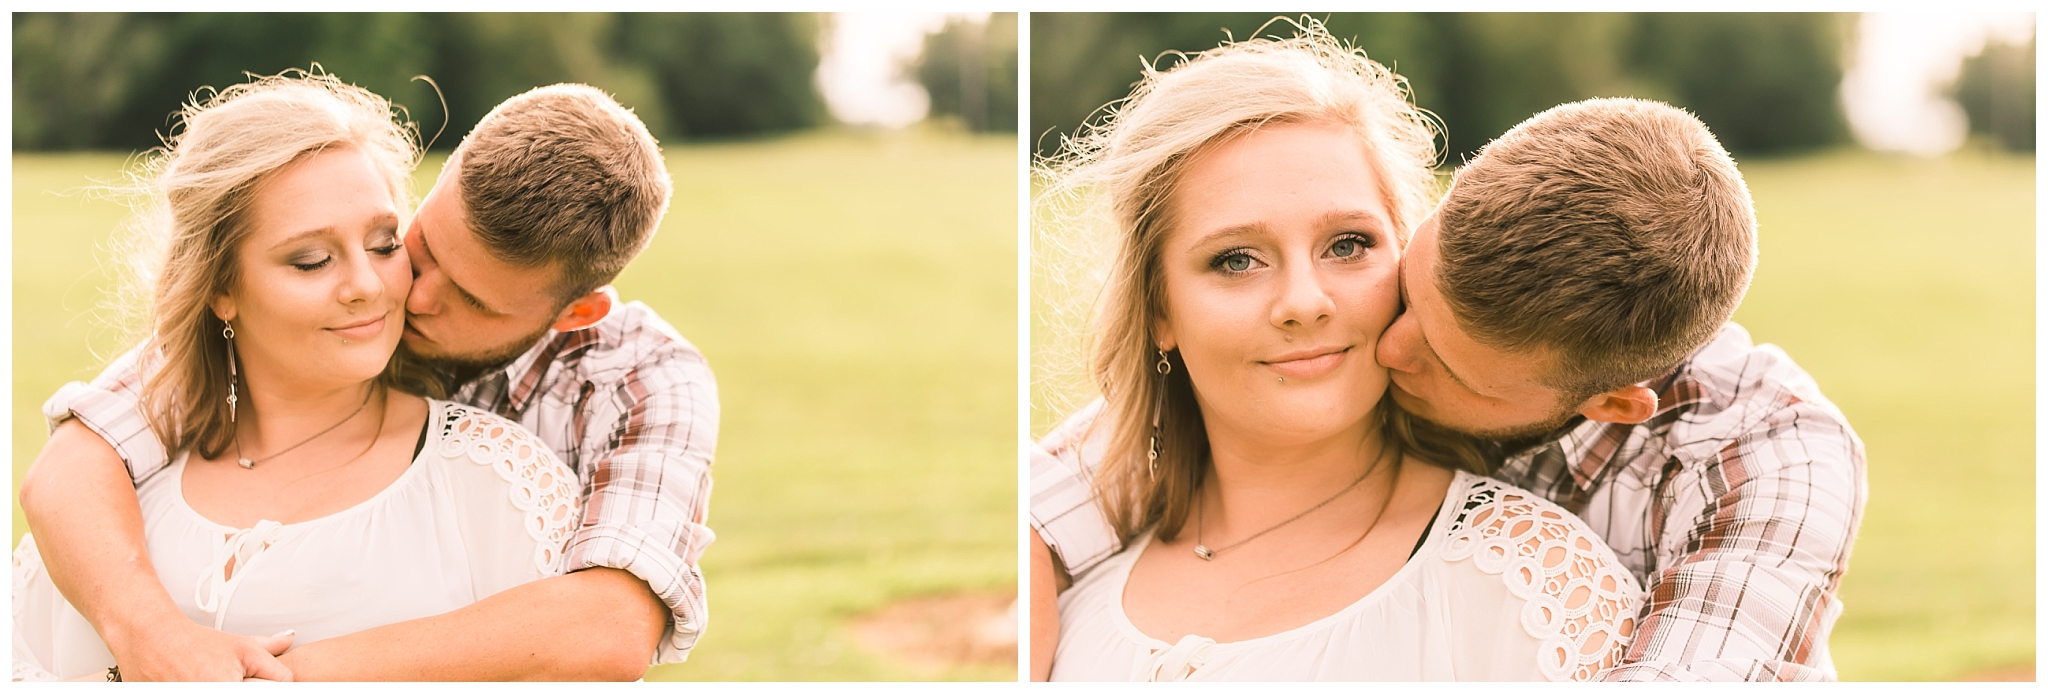 lafayette indiana sunset engagement photography county fair adventure new adventure productions_0681.jpg